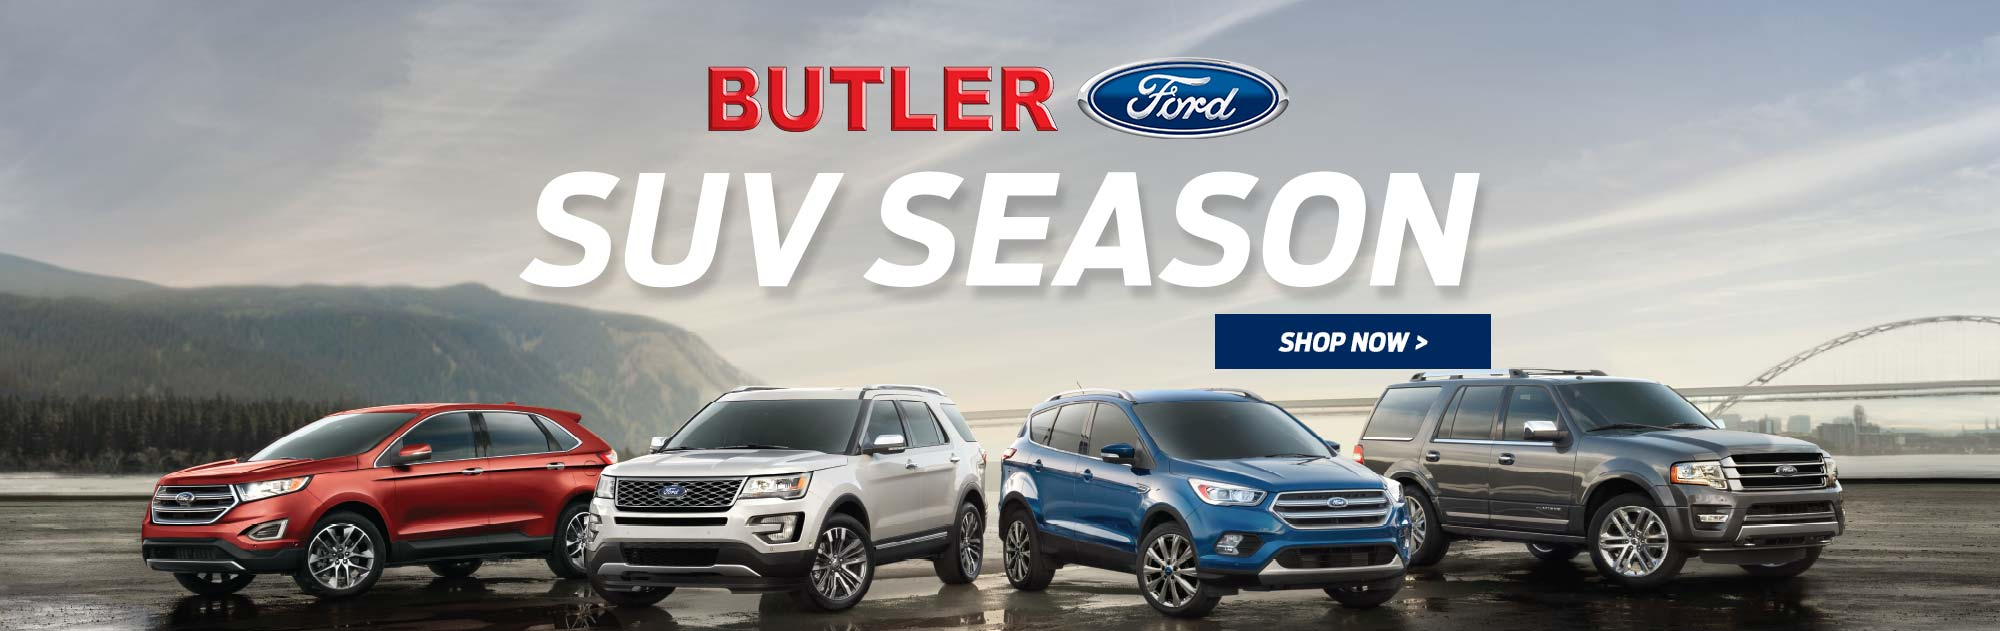 Suv season at butler ford